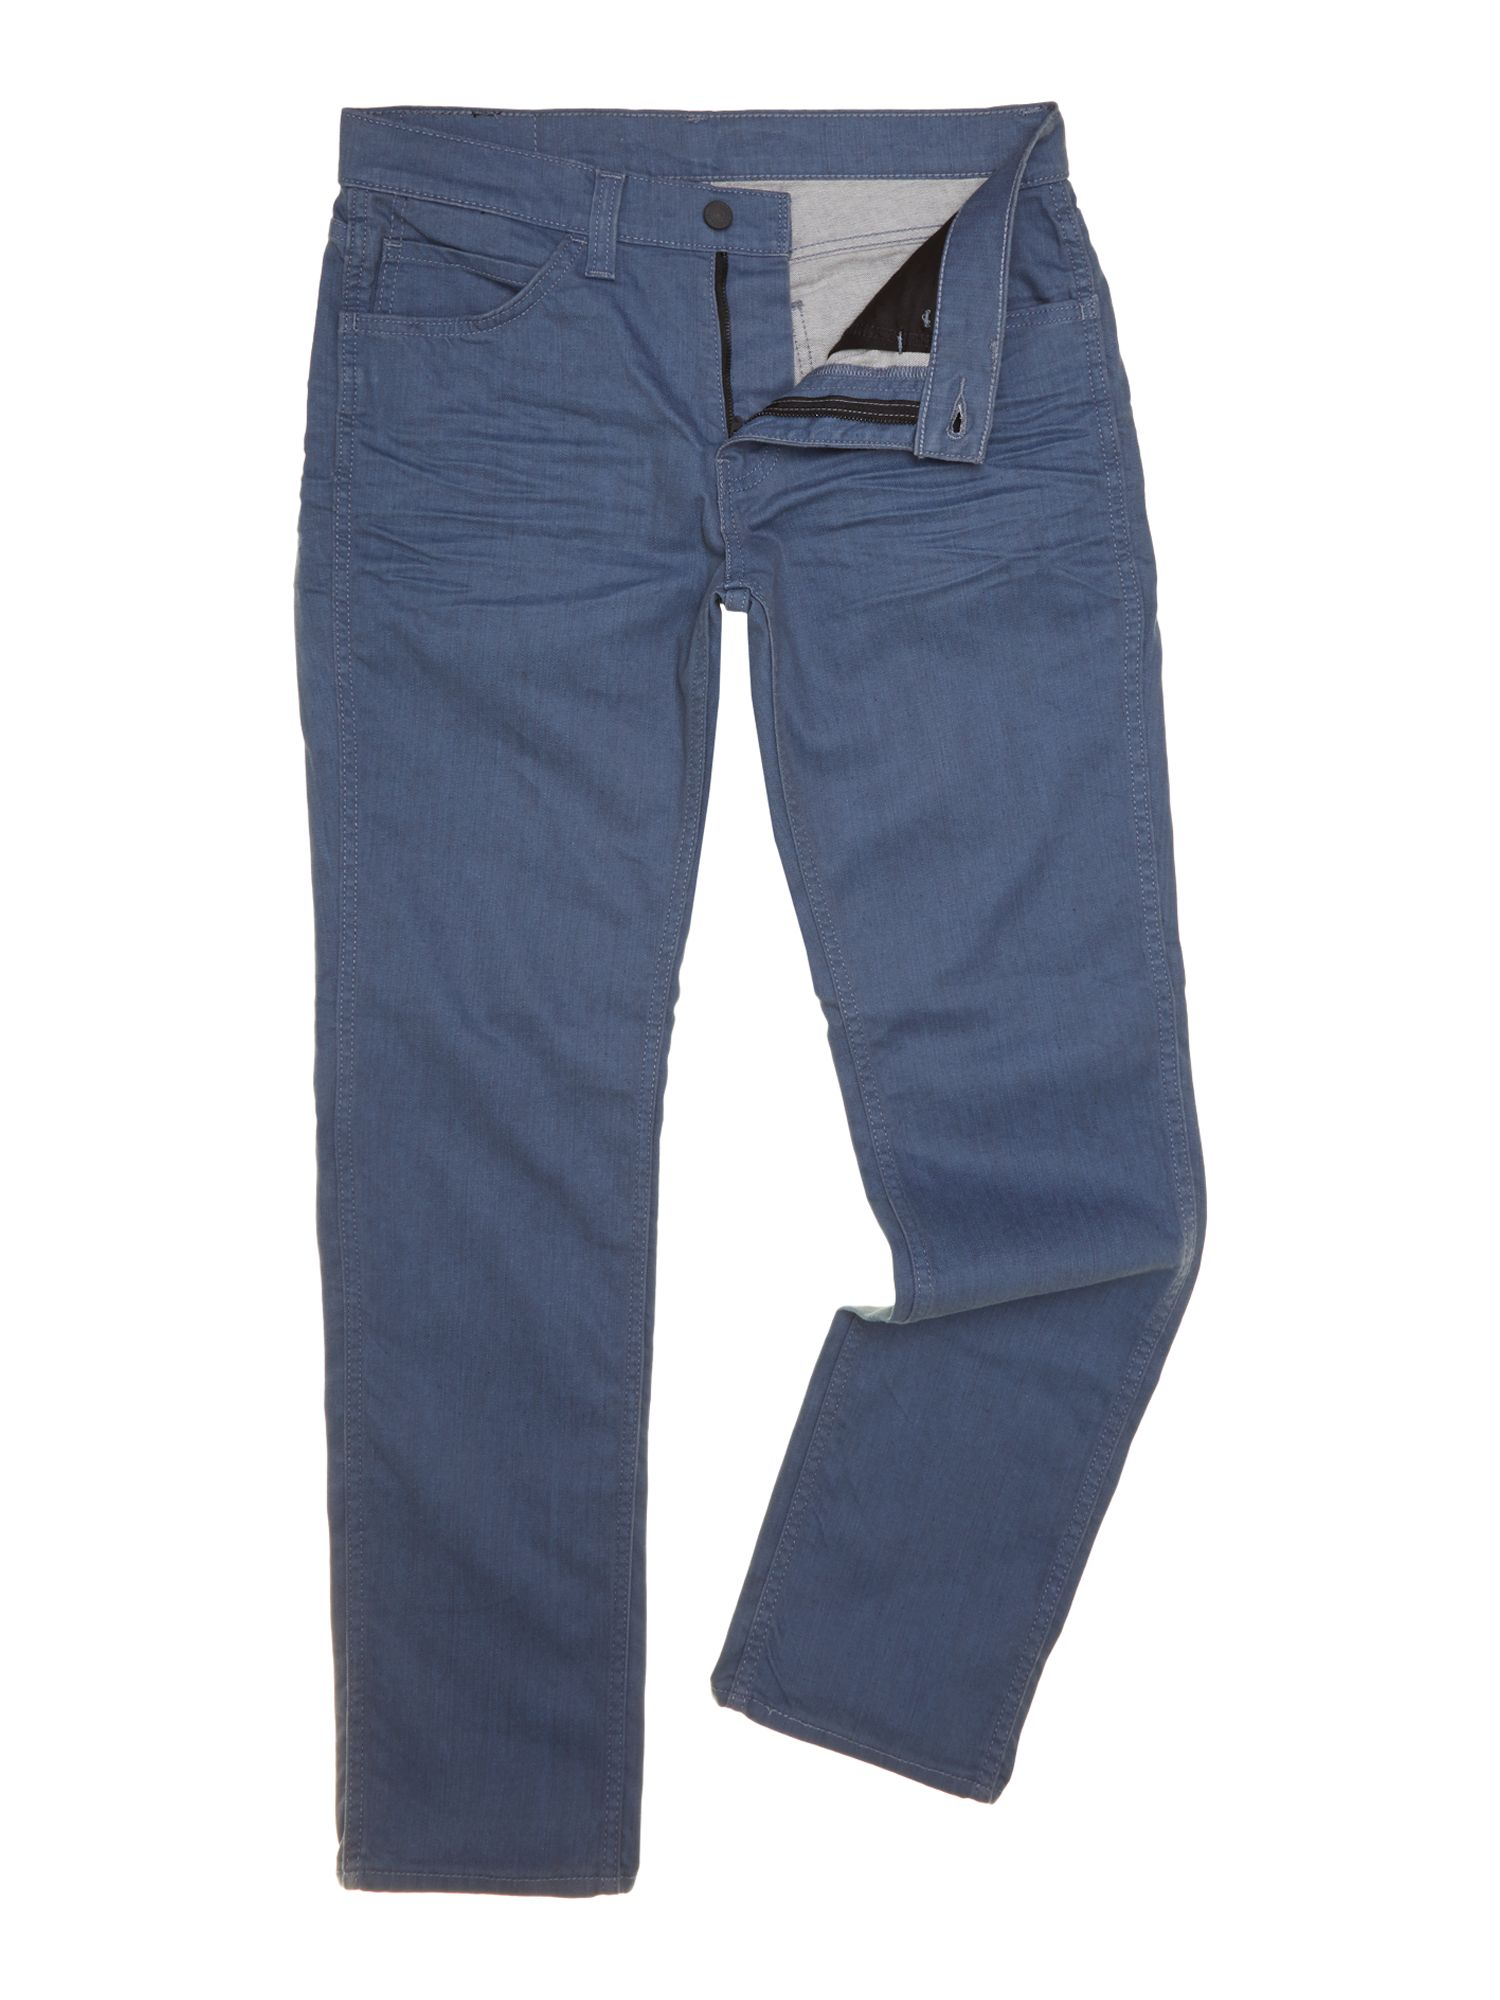 511 line 8 slim fit grey blue wash jeans